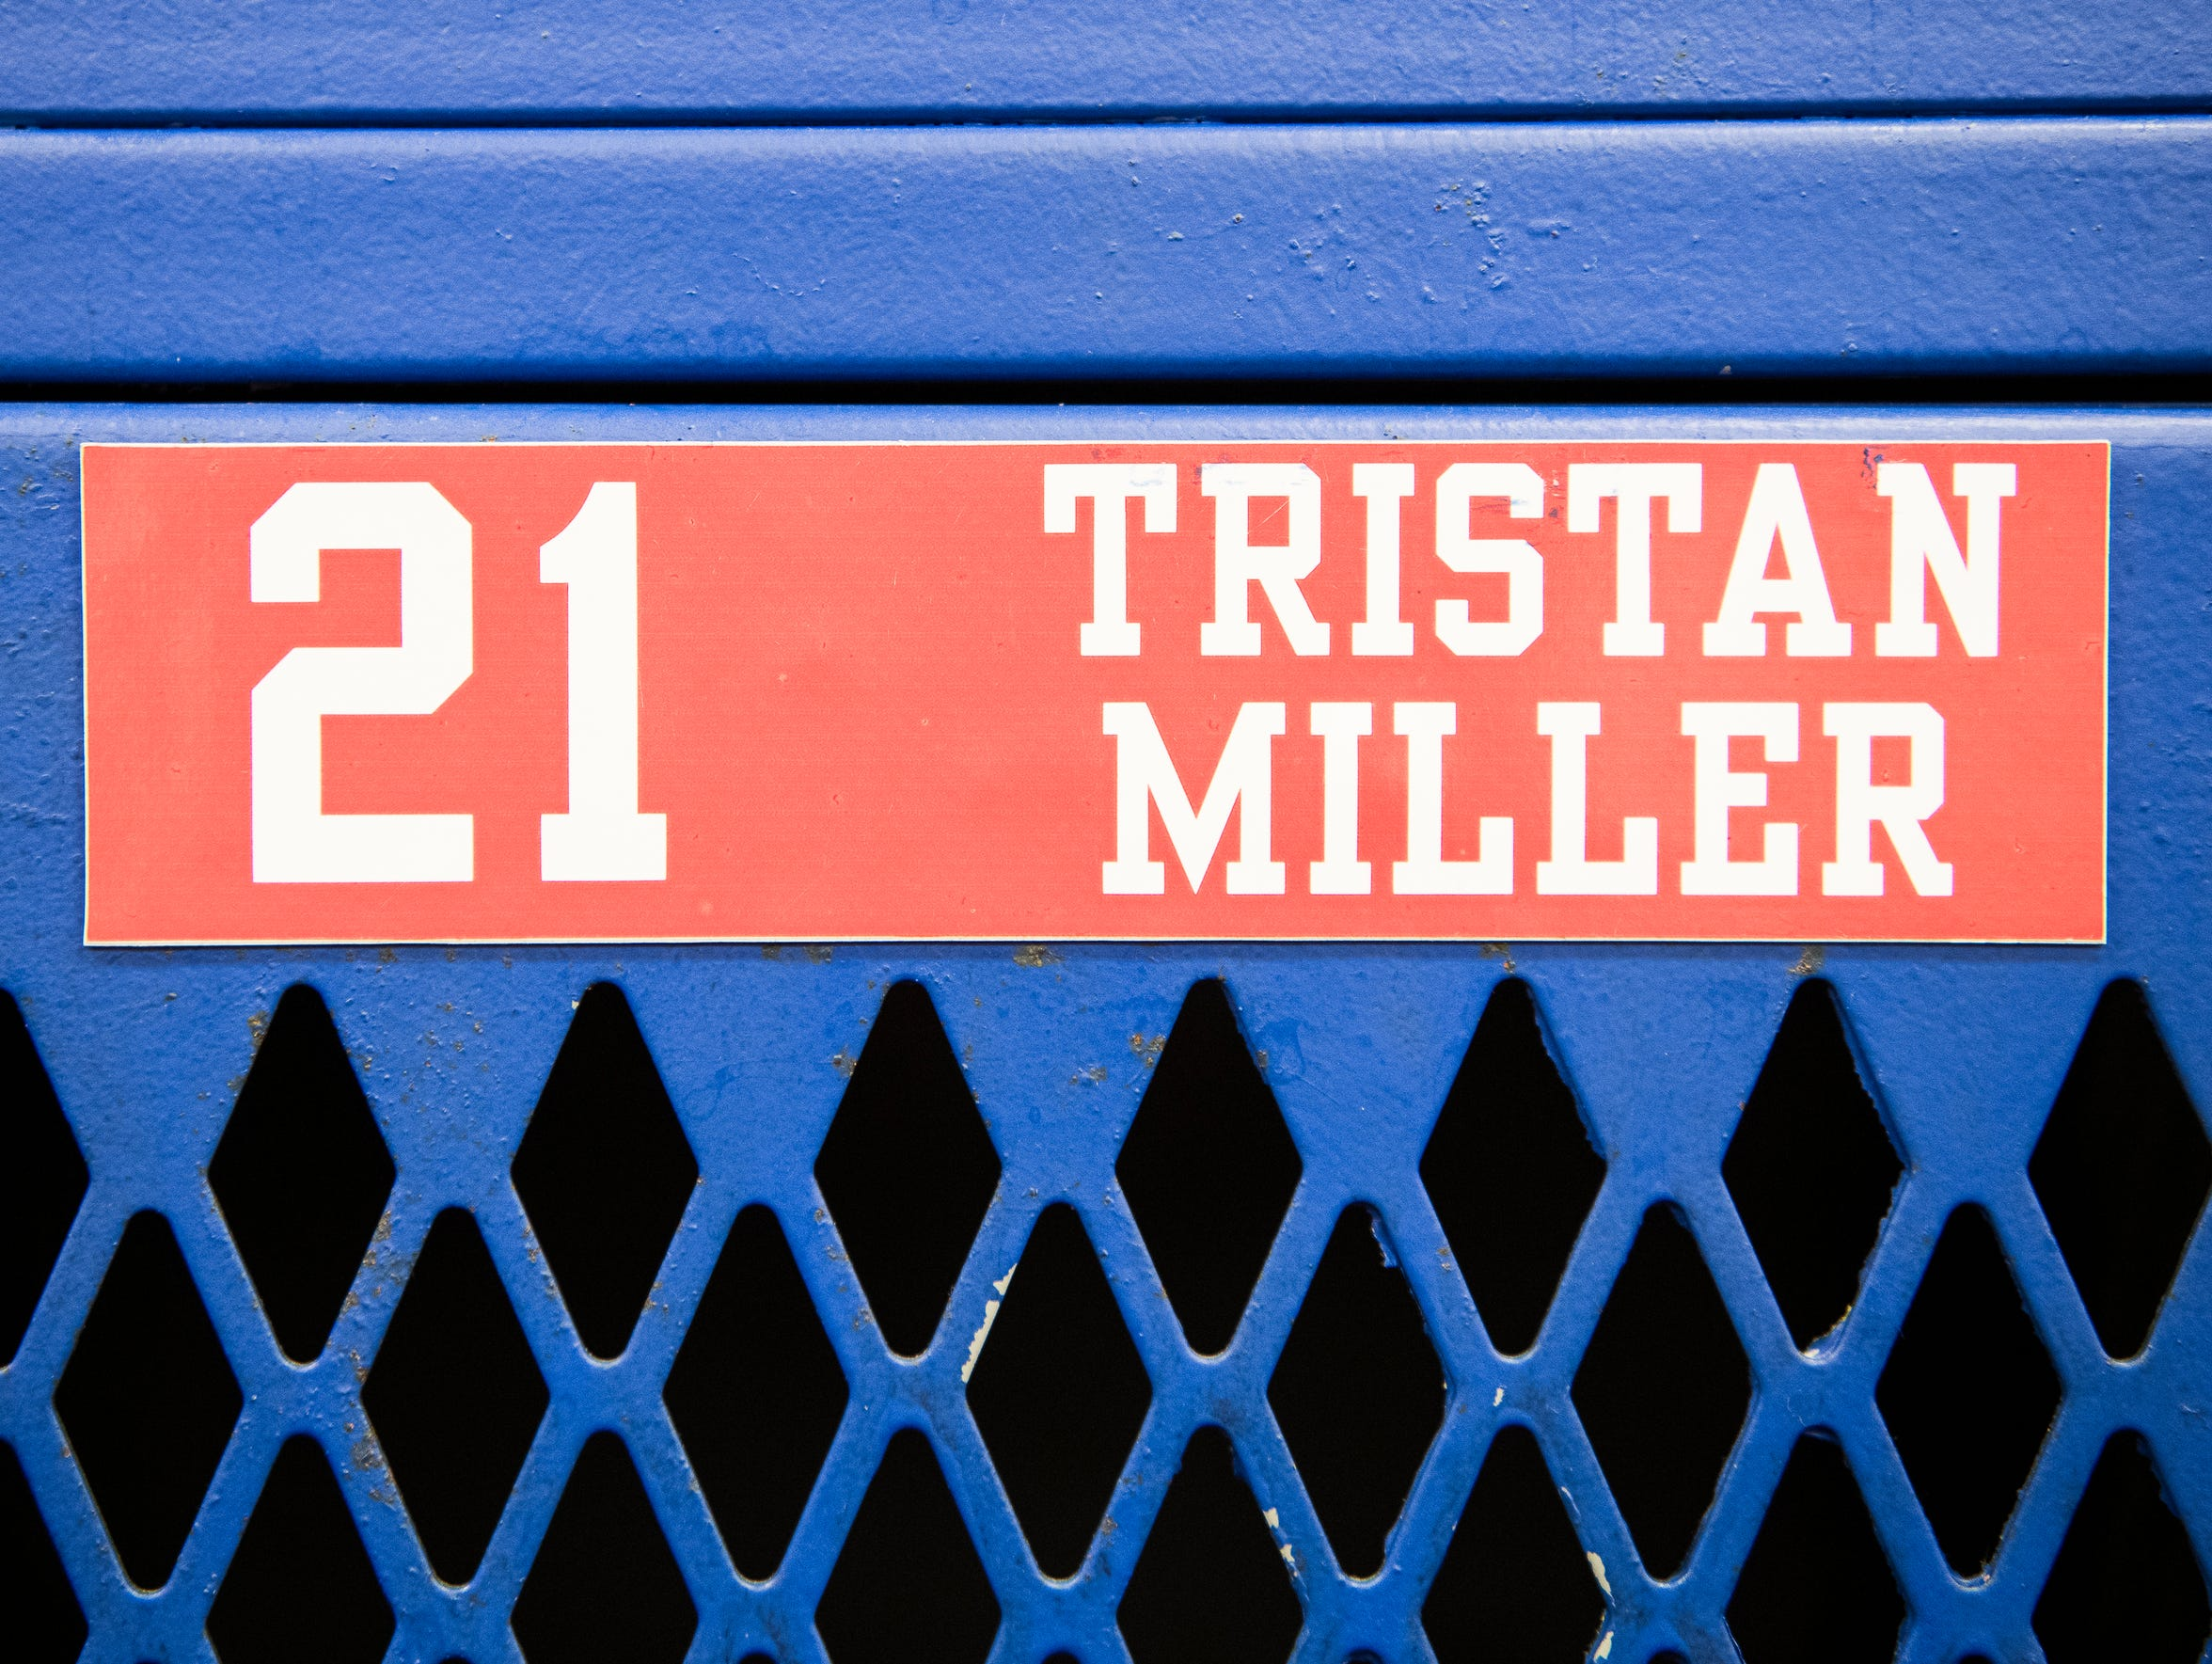 Tristan Miller's basketball locker stands as a remembrance